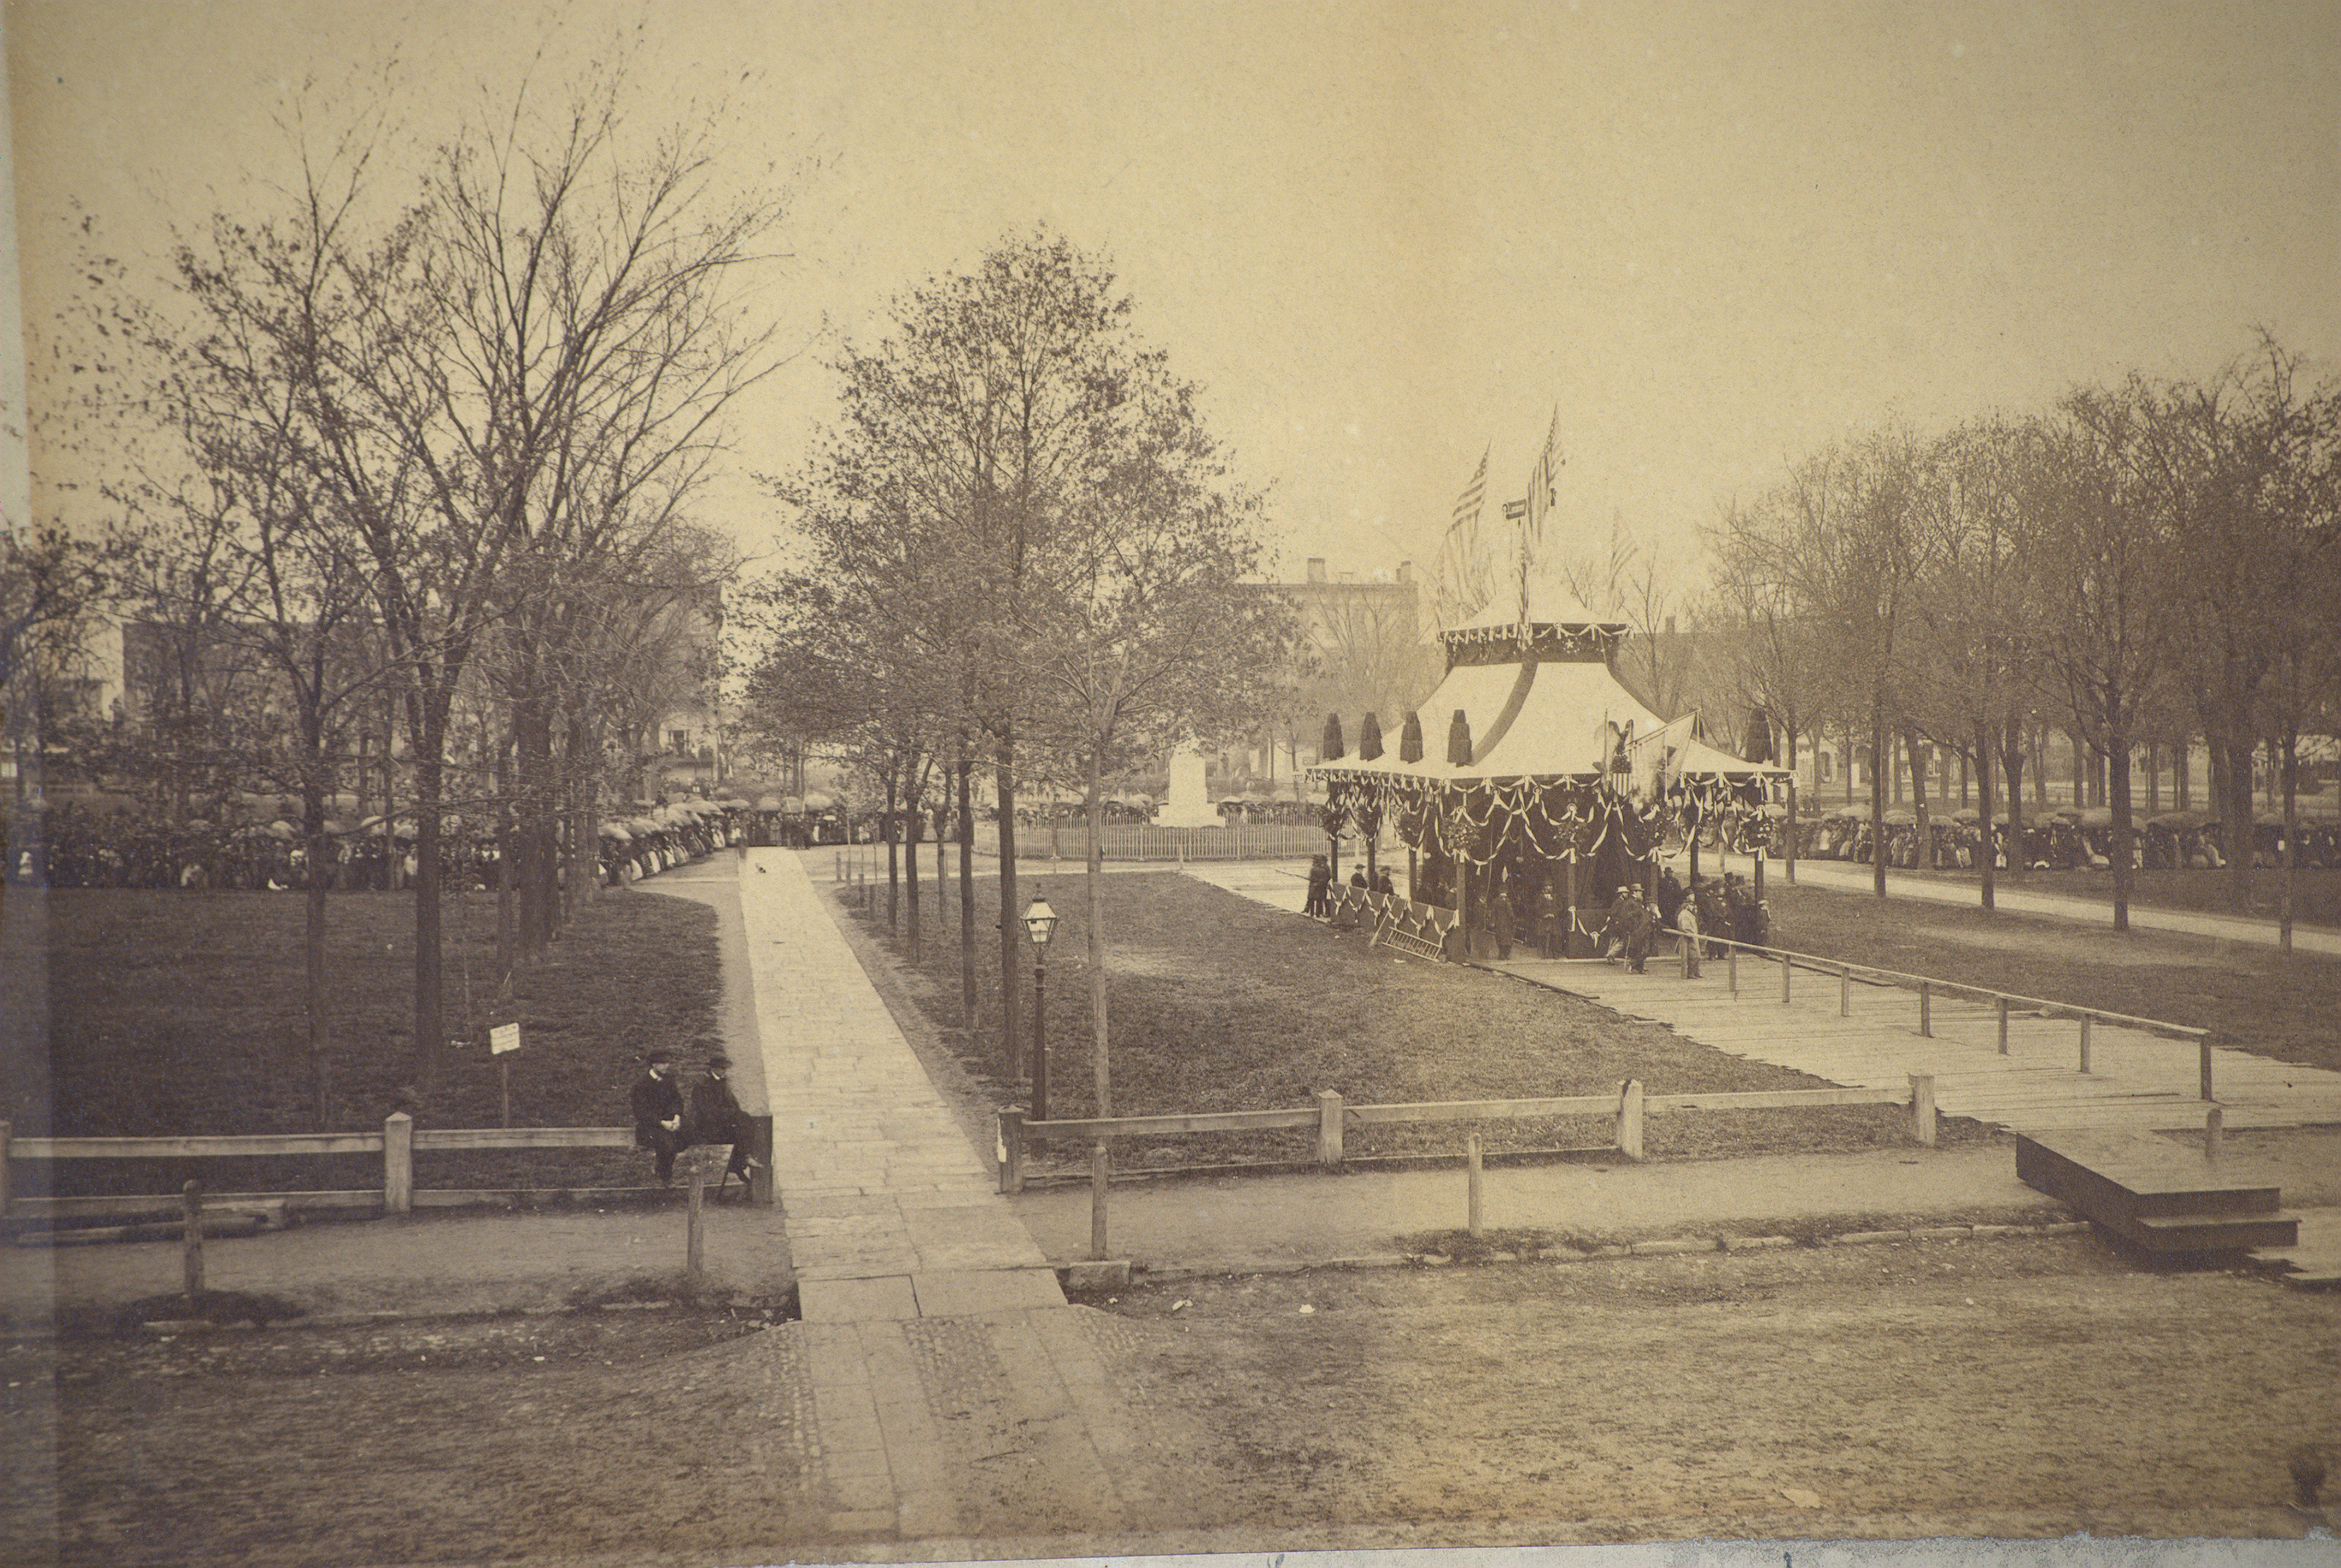 Mourners on Public Square April 28, 1865 wait to view body of Abraham Lincoln